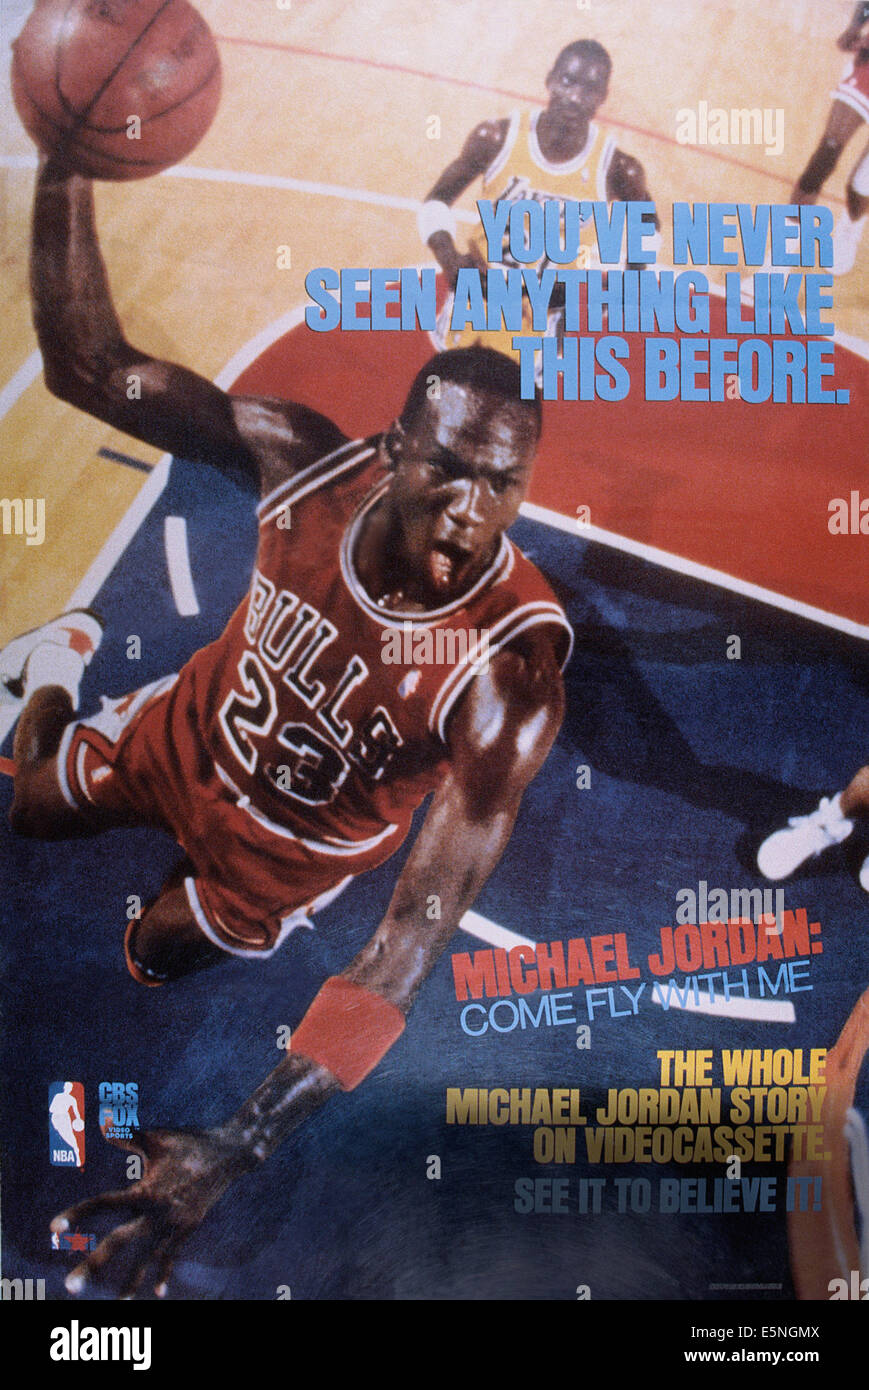 MICHAEL JORDAN: COME FLY WITH ME, US poster, Michael Jordan, 1989. ©CBS Fox Video Sports/courtesy Everett Collection Stock Photo